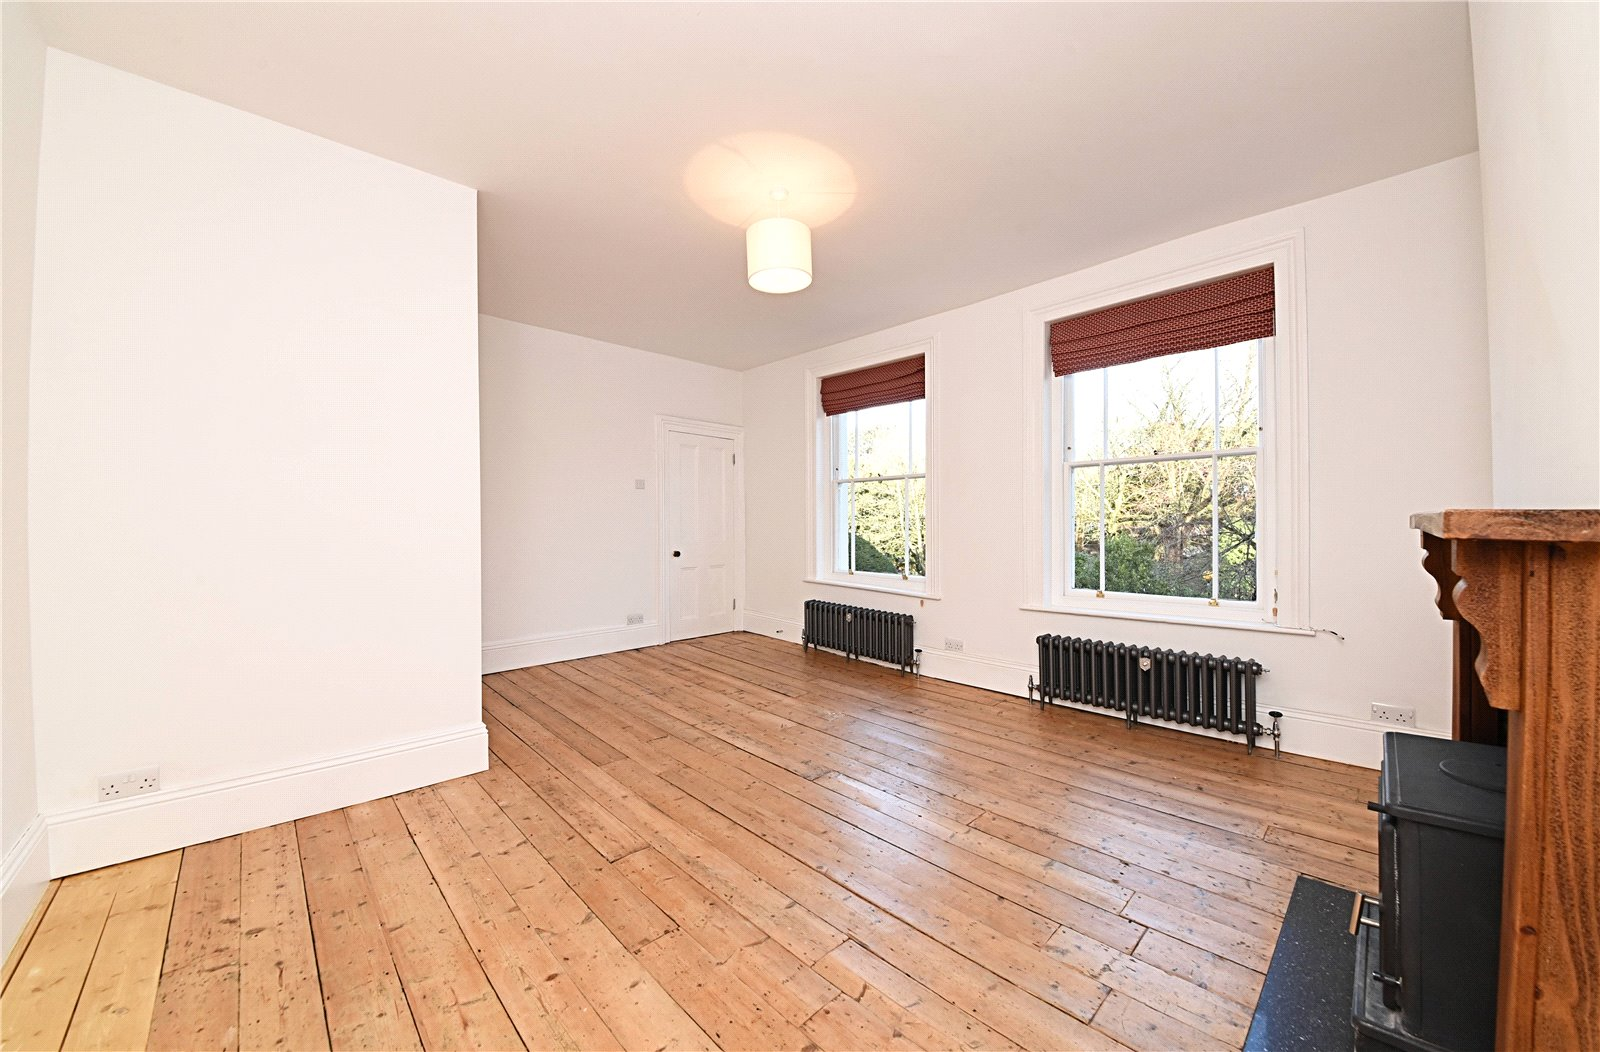 3 bed apartment to rent in Wood Street, High Barnet 5